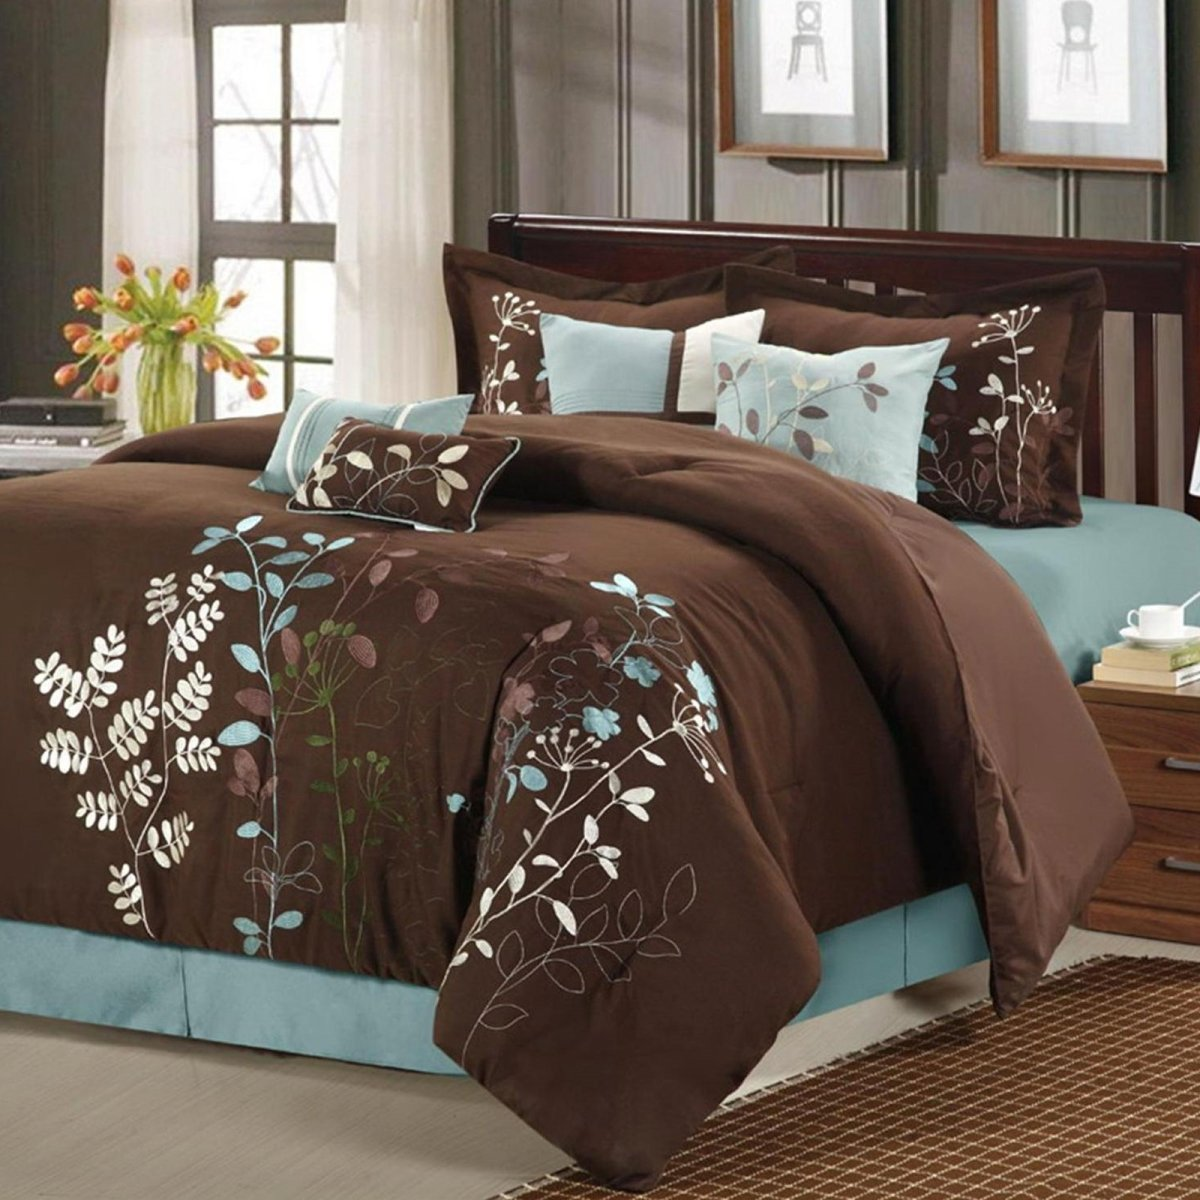 Chic Home Bliss Garden 8 Piece Embroidered Comforter Set, Queen, Brown